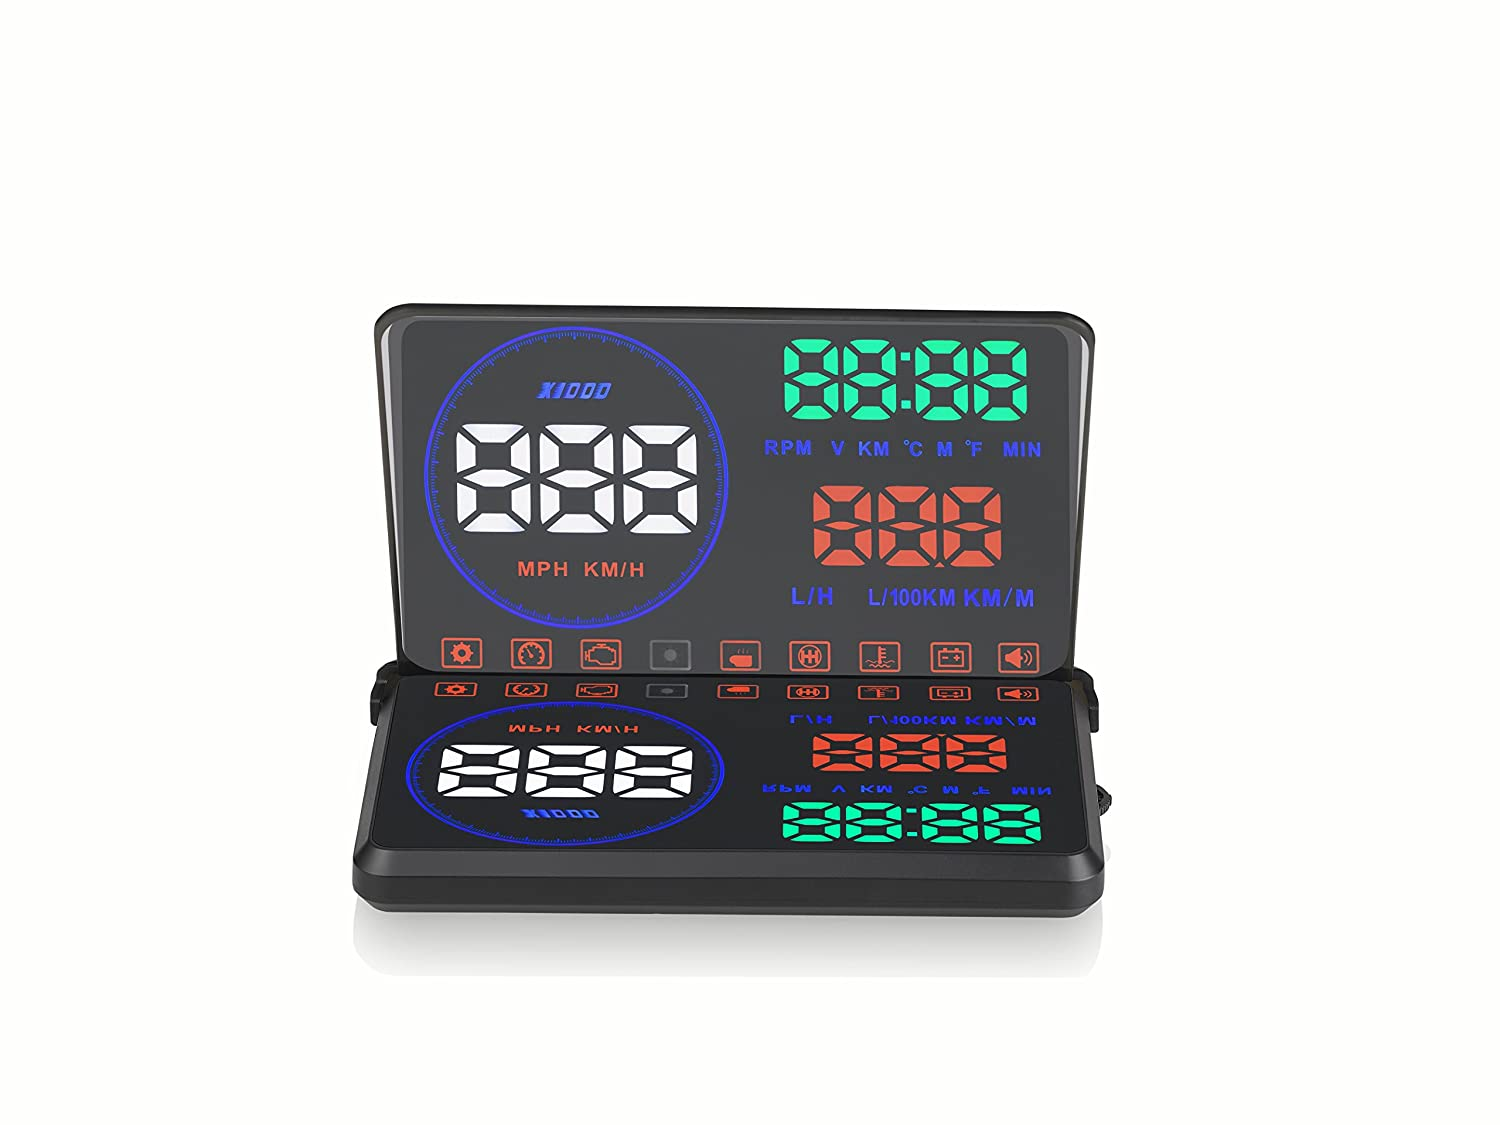 Eoncore M9 5.5 Car HUD Head Up Display with OBD2 Interface Plug /& Play KM//h MPH Speeding Warning Driving Distance Display With HD Image Reflection